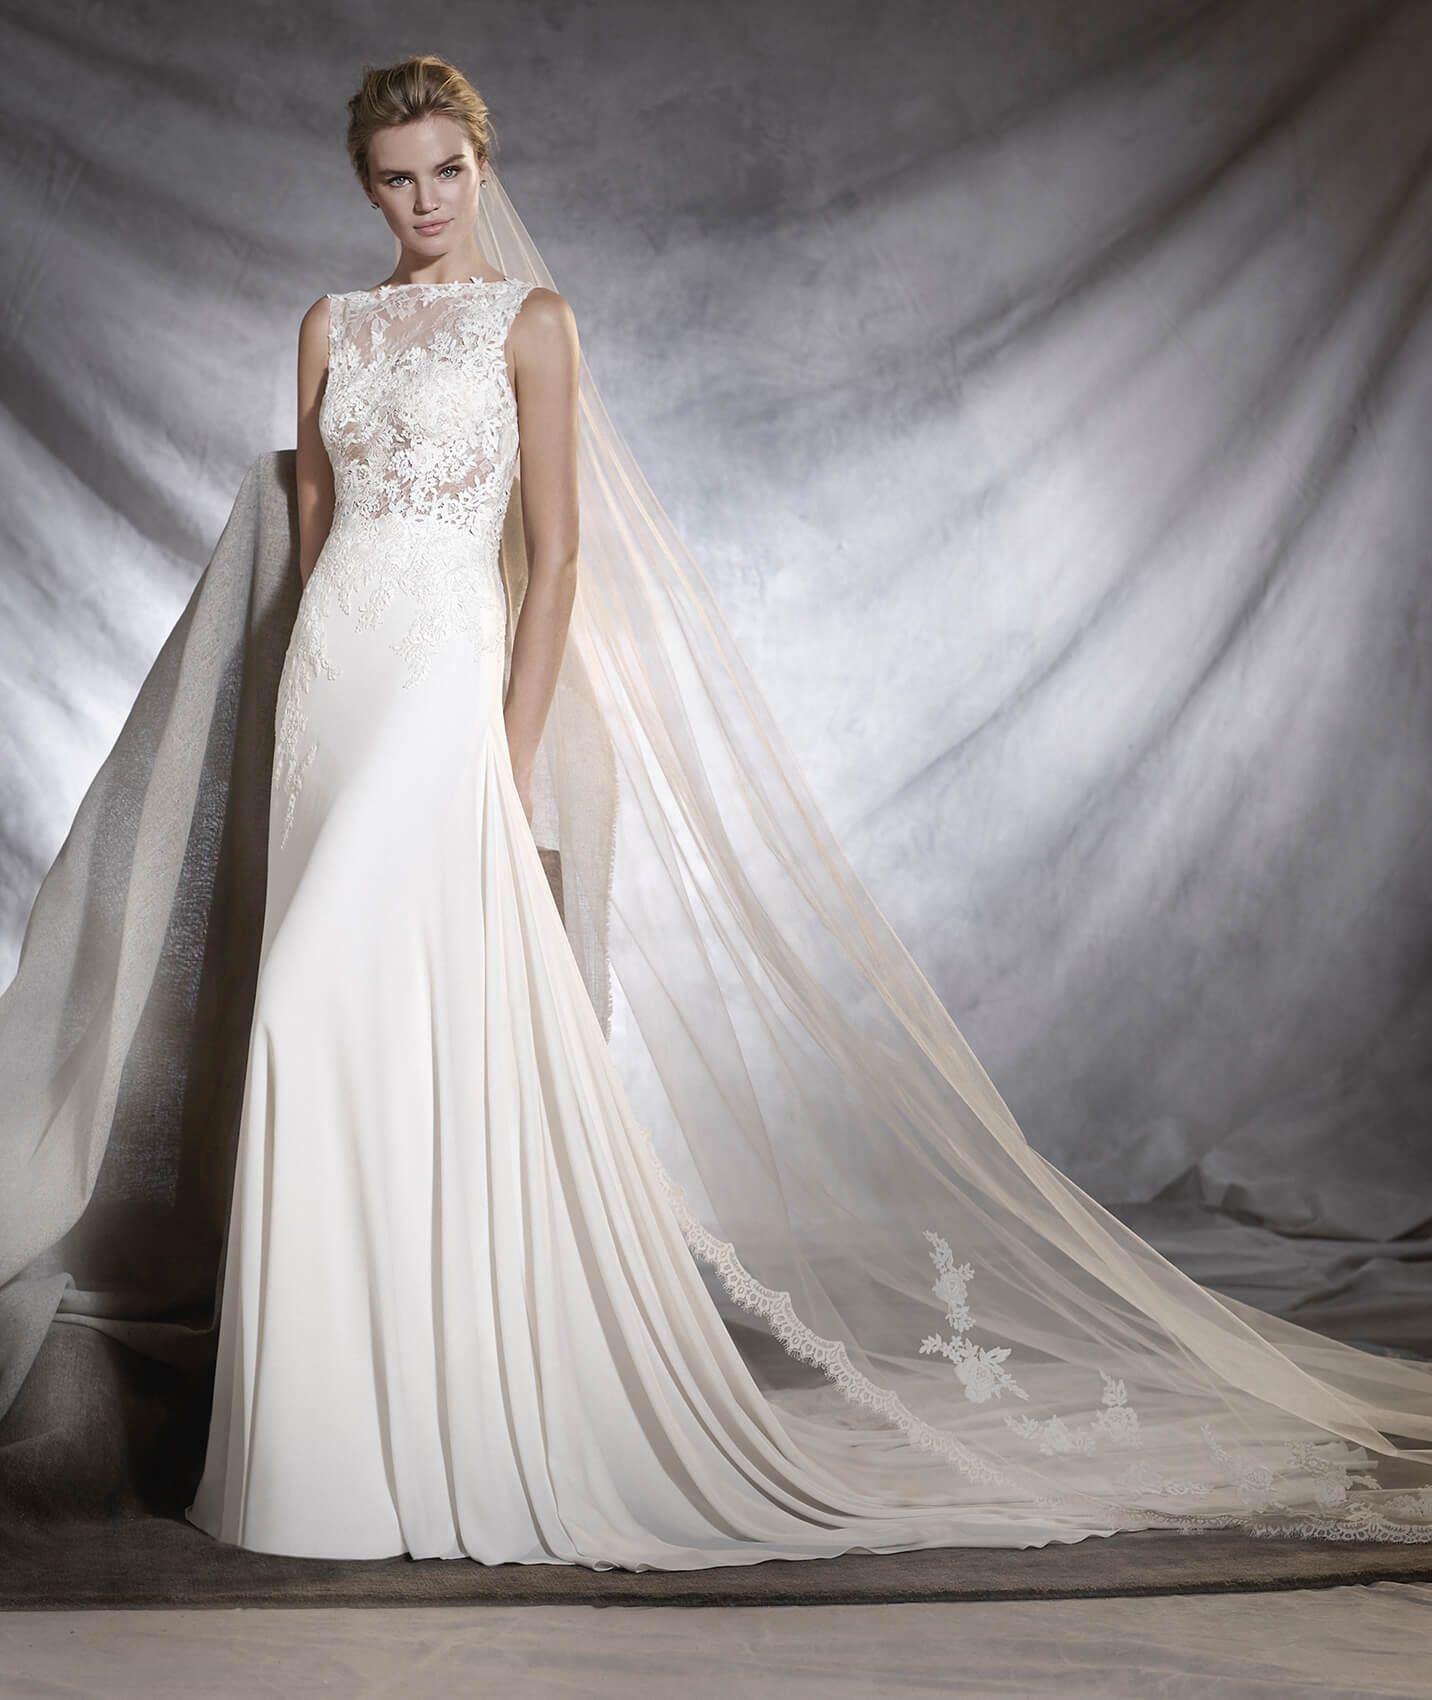 Low Waist Wedding Gowns: Fashionable Lace Appliqued Bodice A-line Low Waist Bridal